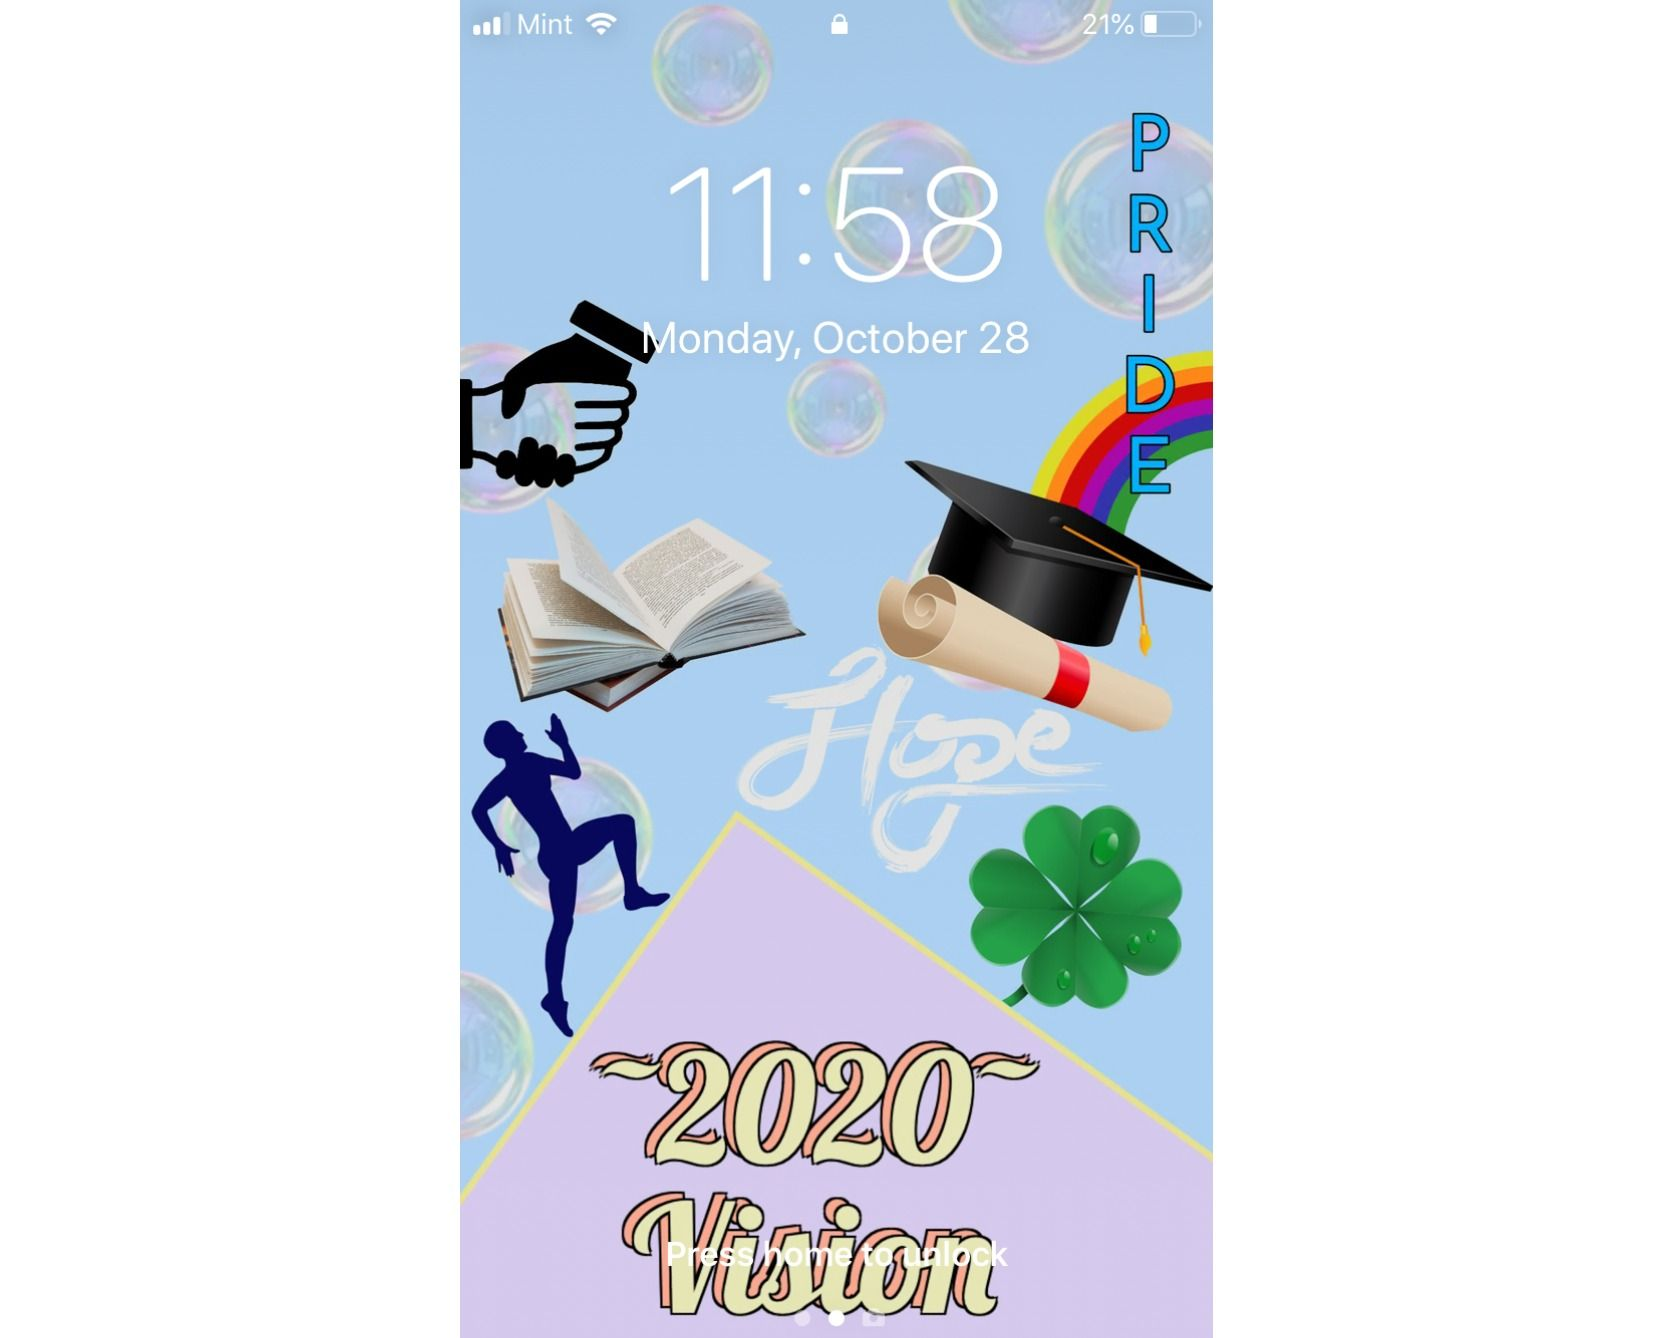 A screenshot of a digital vision board being used as a phone lockscreen.